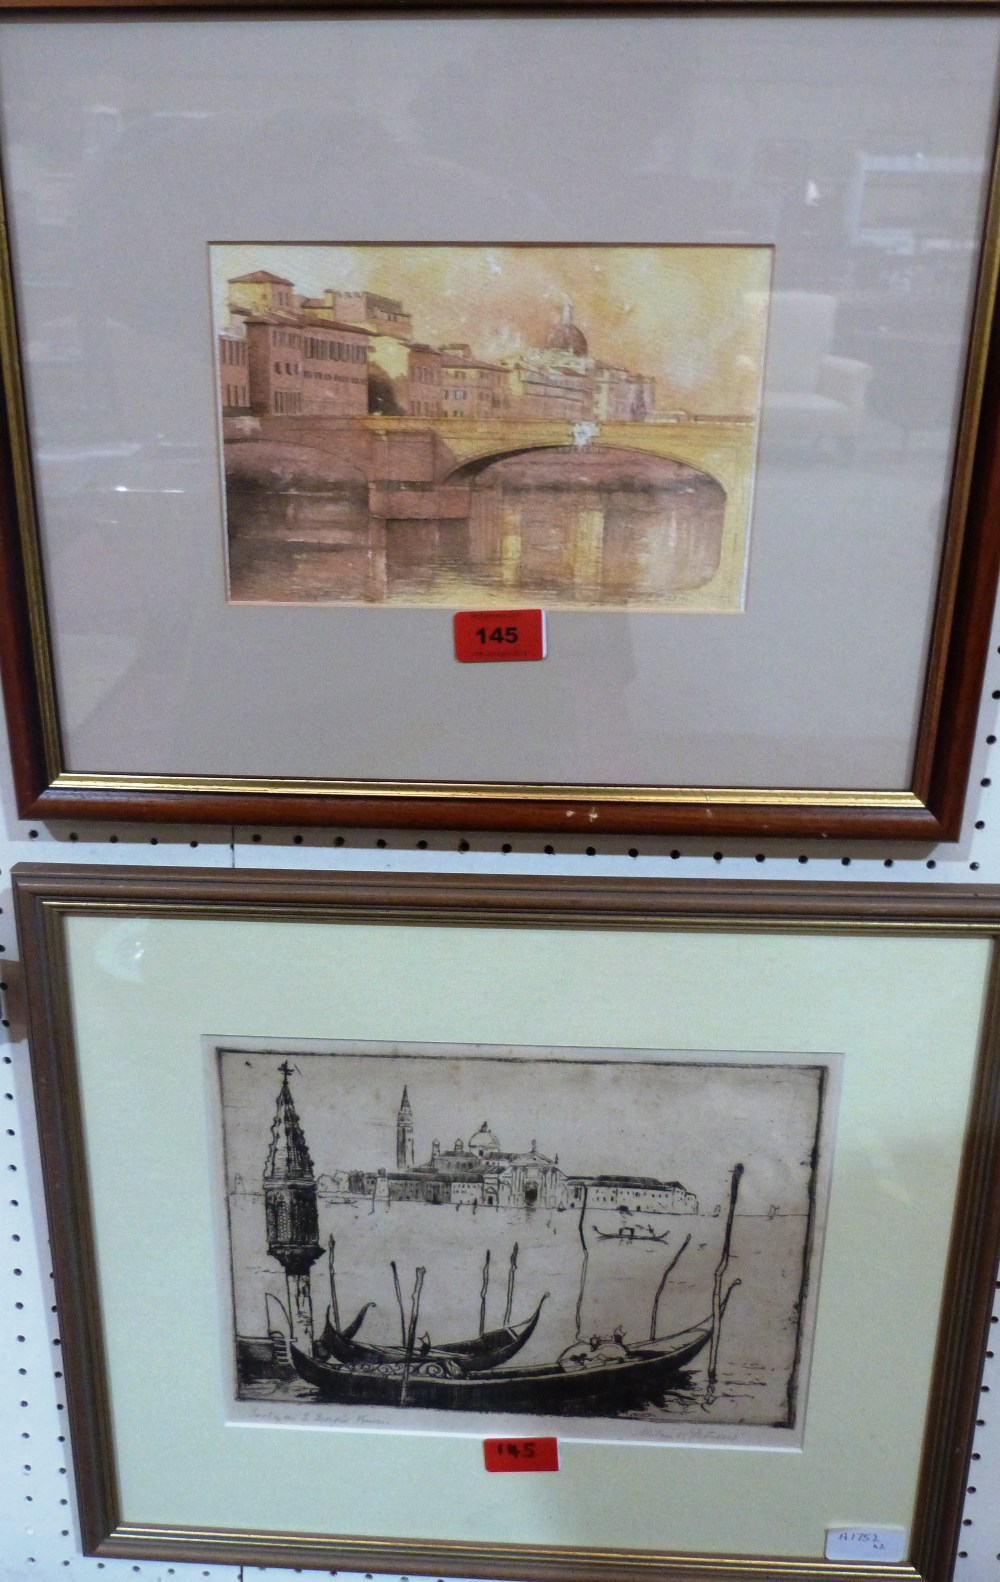 A watercolour of Florence signed Piraino, 5 1/2' x 8 1/2' and an etching of Venice signed Milan